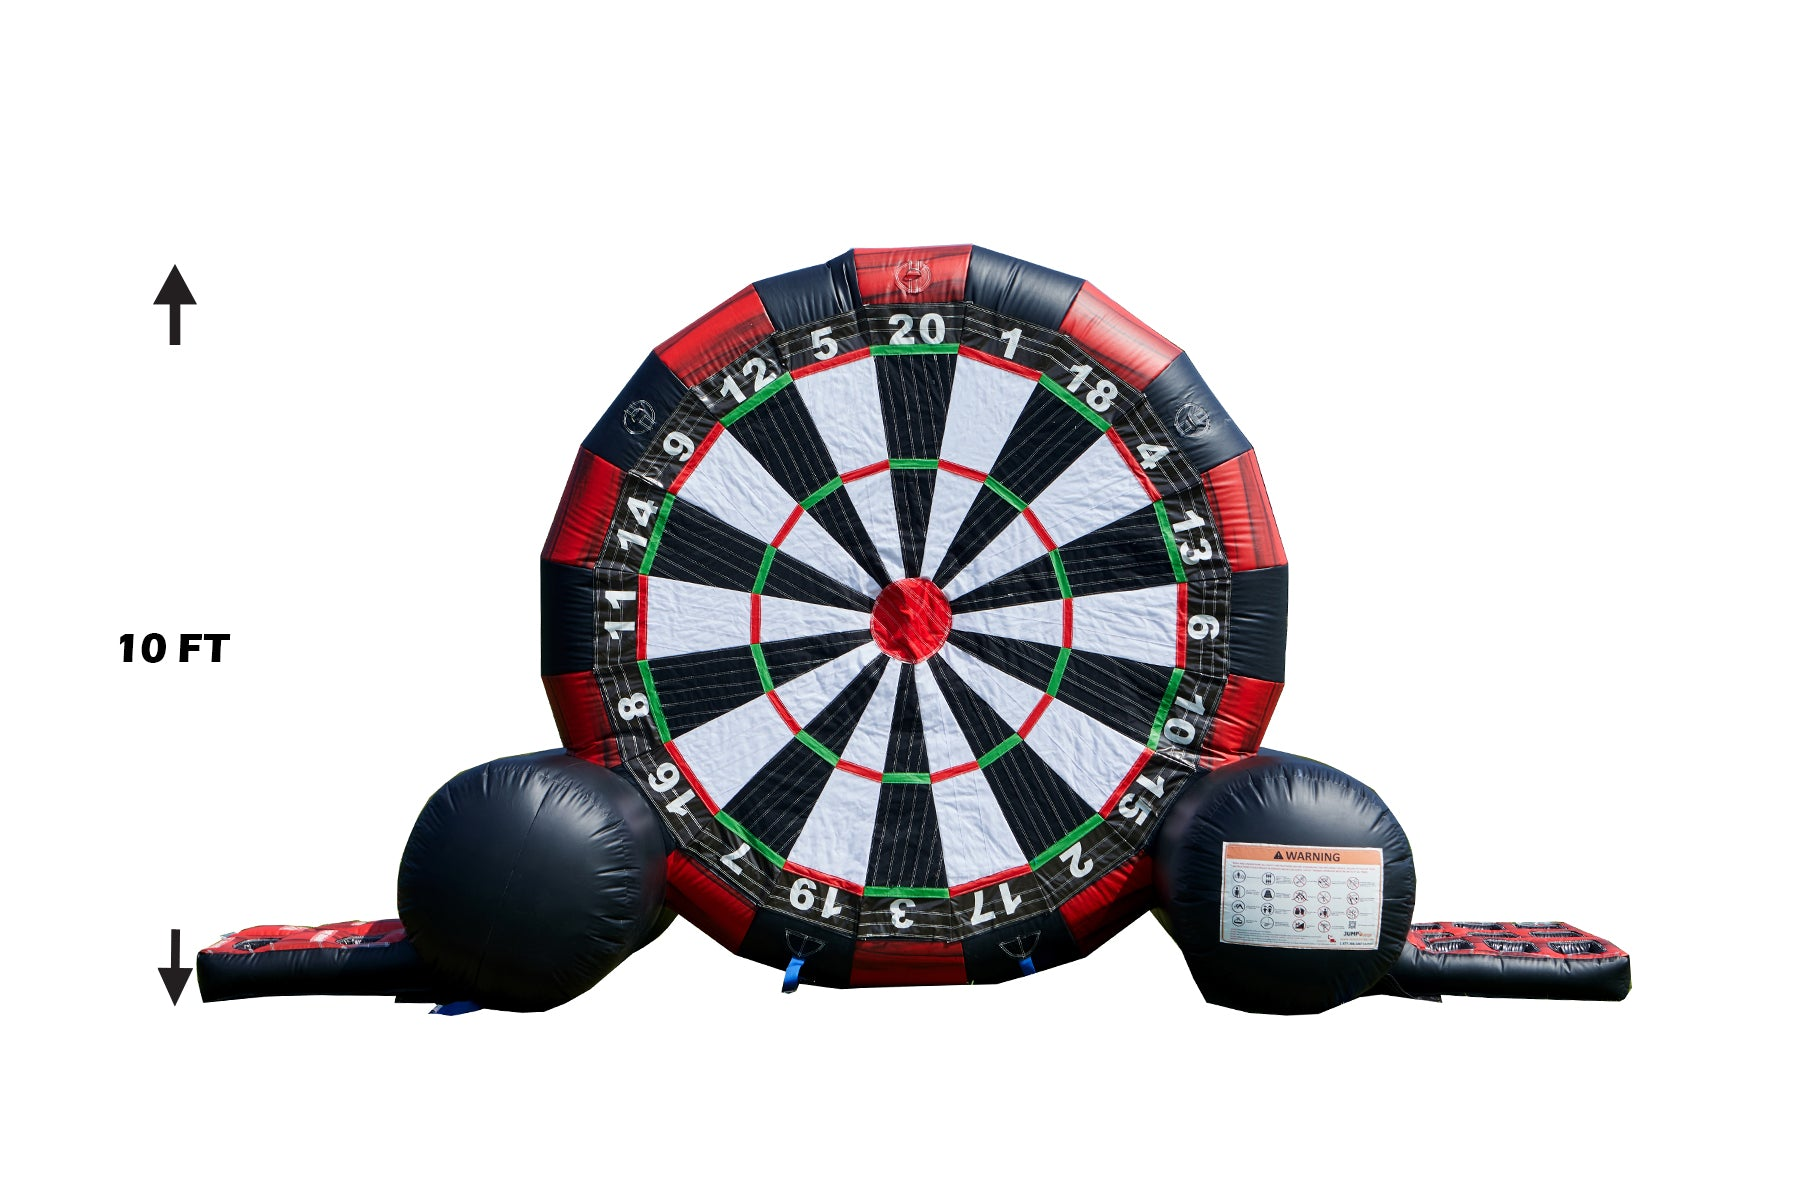 MULTI-USE 10 FT SOCCER DART/BANNER GAME/SIDE GAME + LED POCKET